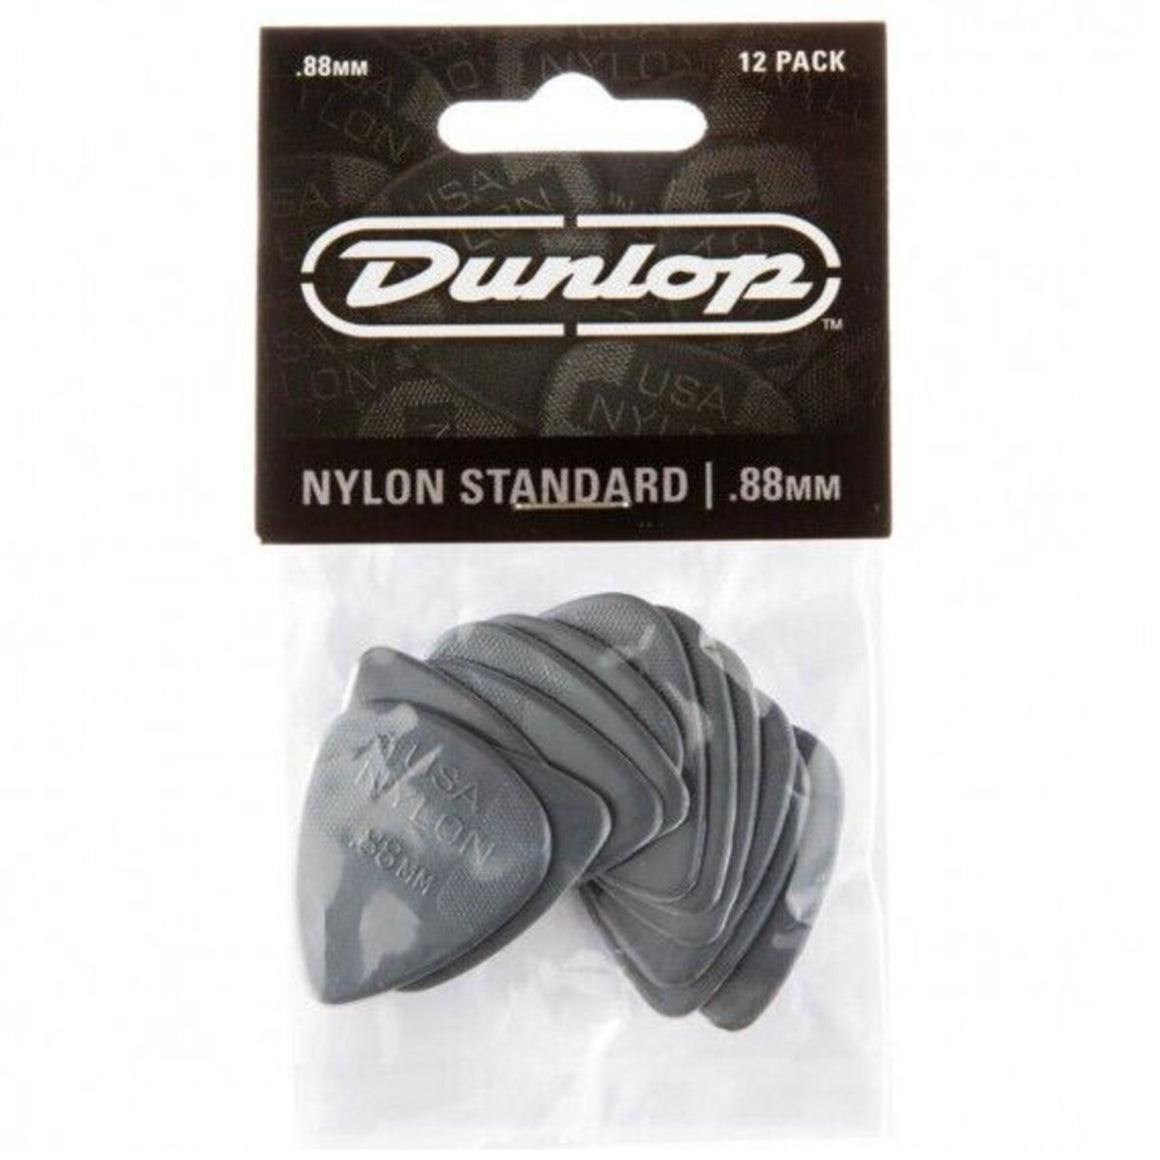 Dunlop 44p88 Nylon Standard .88 Dark Gray Guitar Picks - 12 PACK